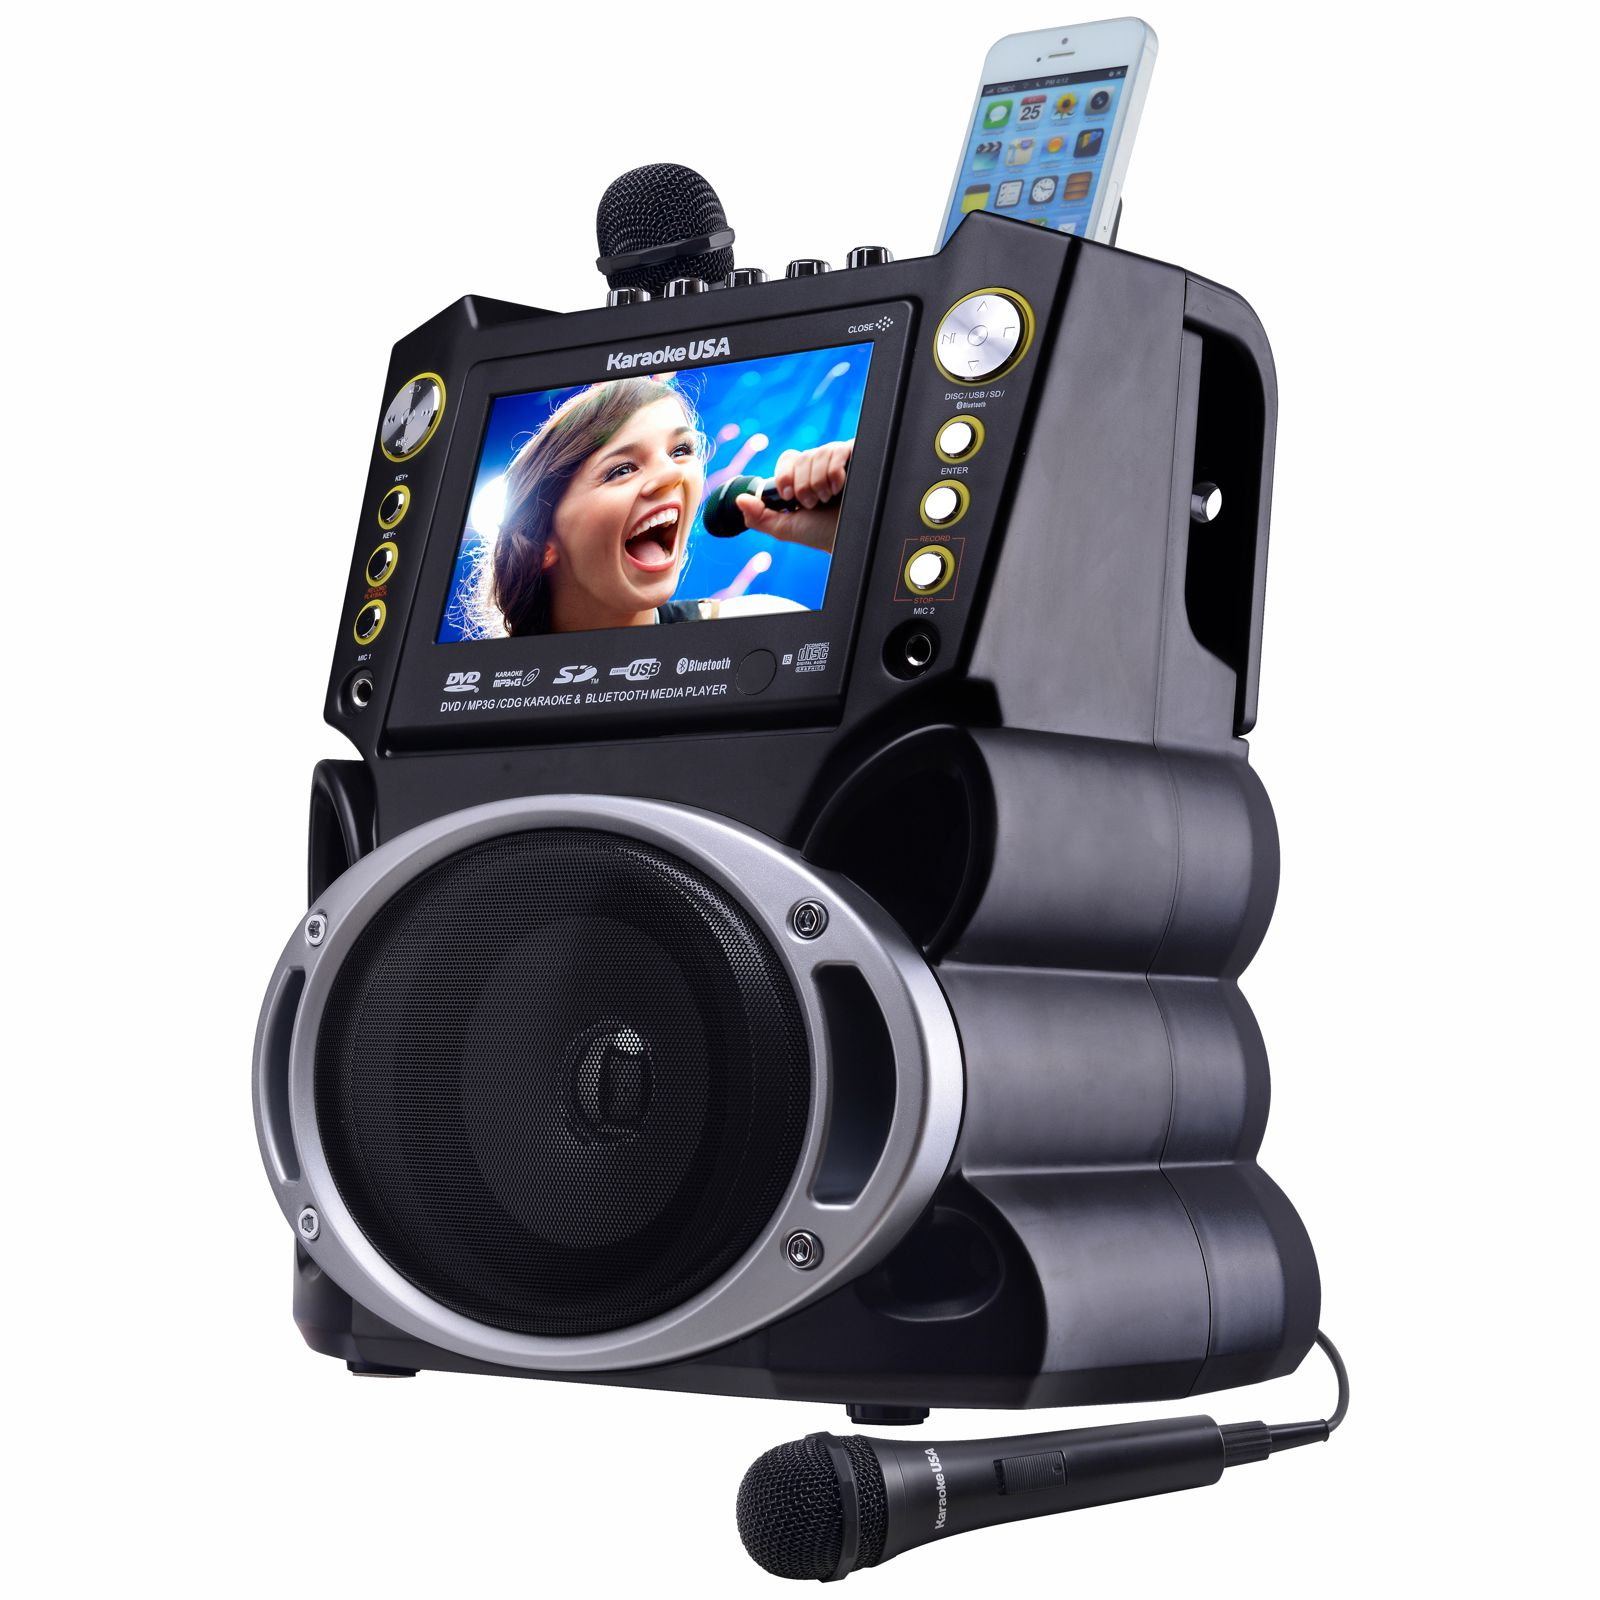 Karaoke DVD/CD+G/MP3+G Bluetooth Karaoke System with 7″ TFT Color Screen and Record Function